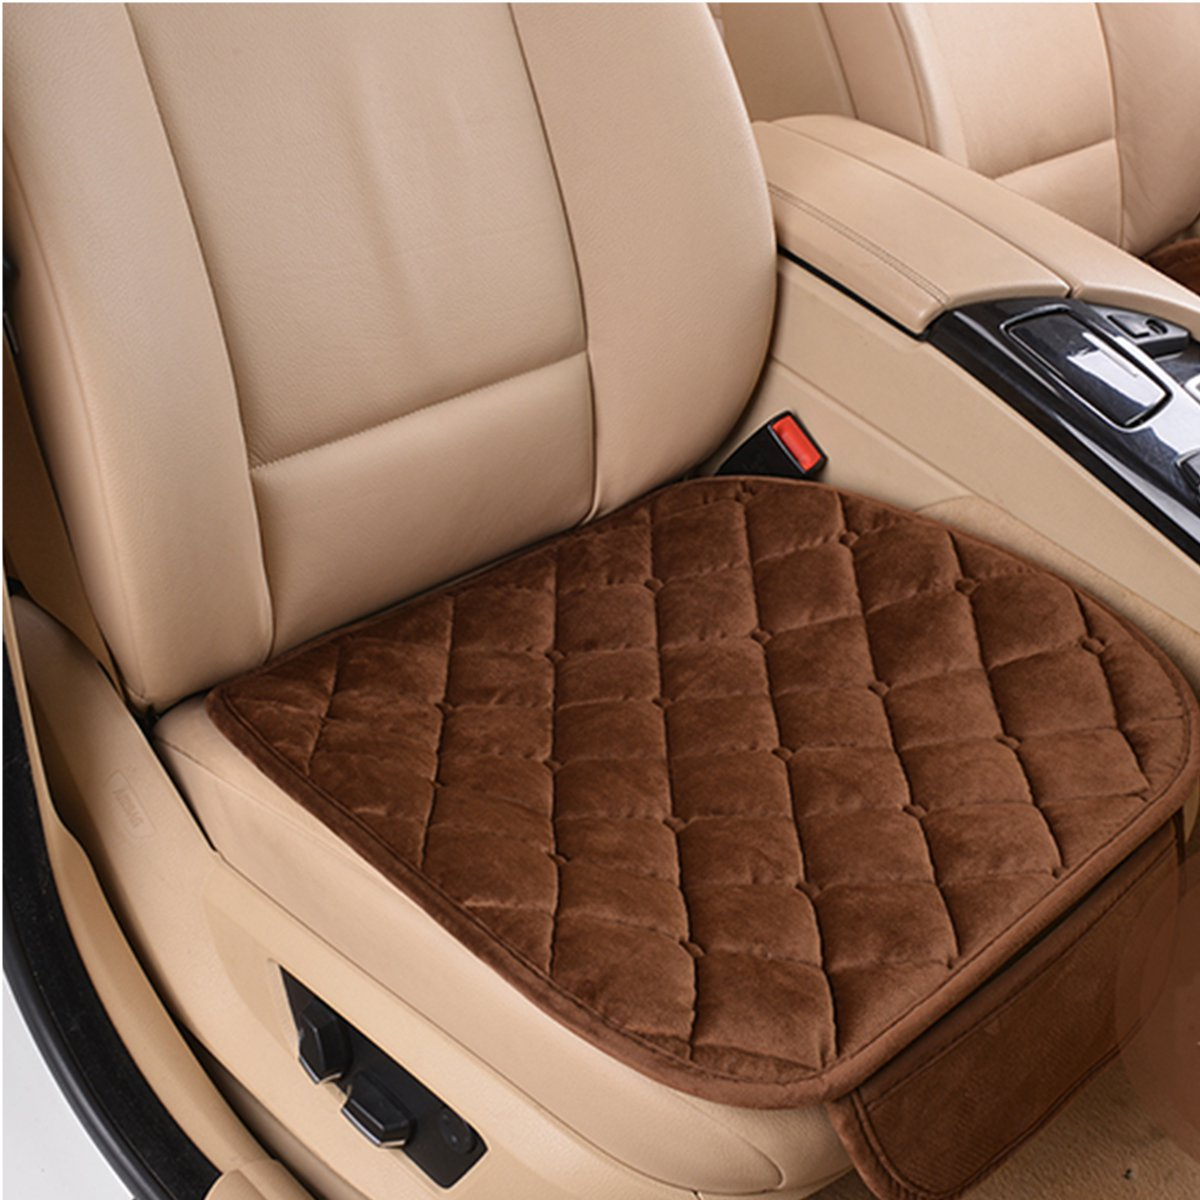 leather chair covers ebay horse saddle bar chairs new plush anti slip car seat cover small mat rhombus